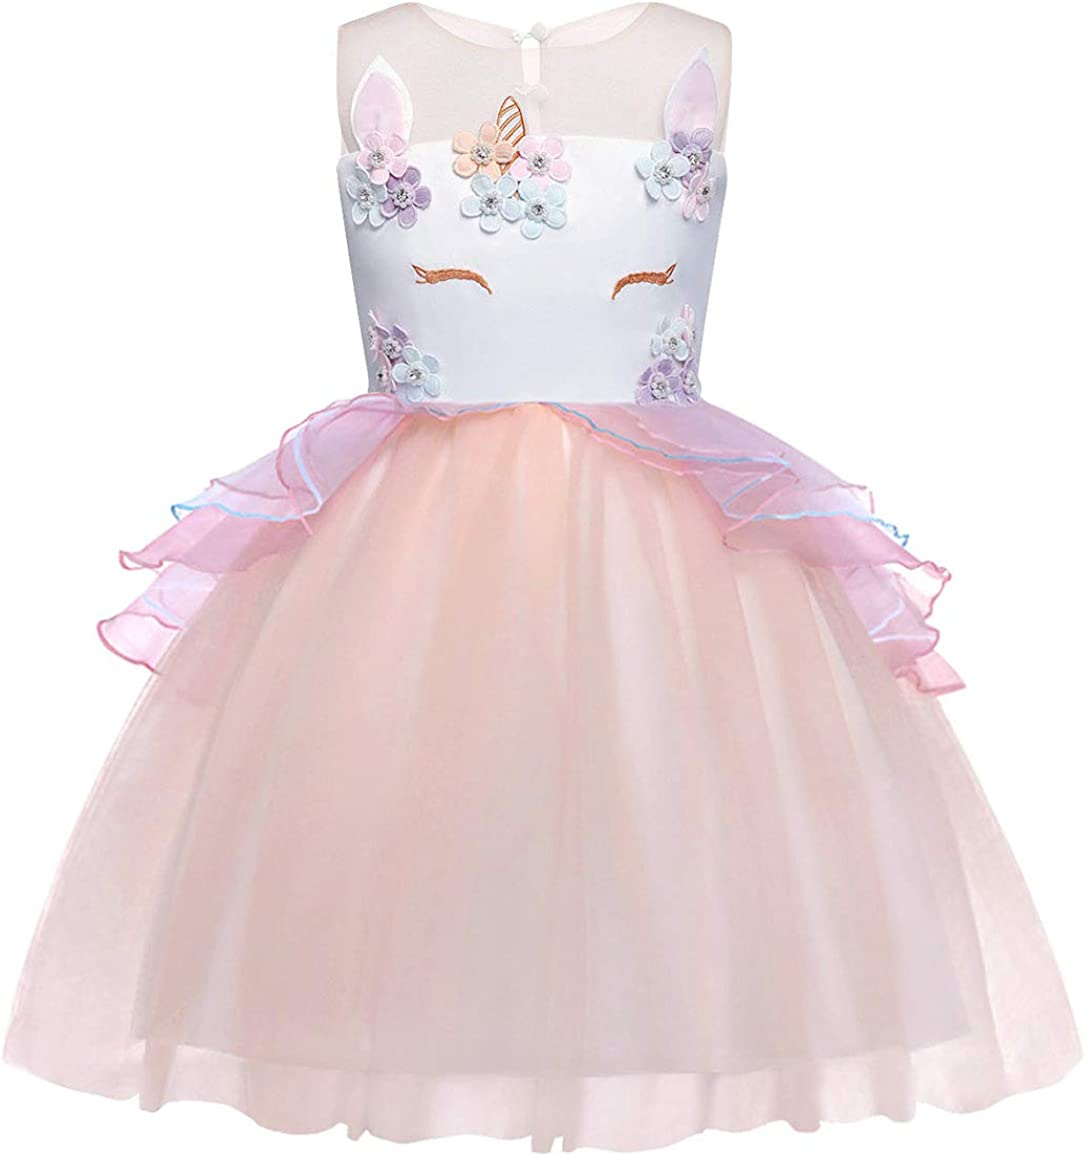 WonderBabe Unicorn Princess Costume for Girls Dresses Fancy Flower Pageant Birthday Party Dress Up Evening Gowns Festival Outfit